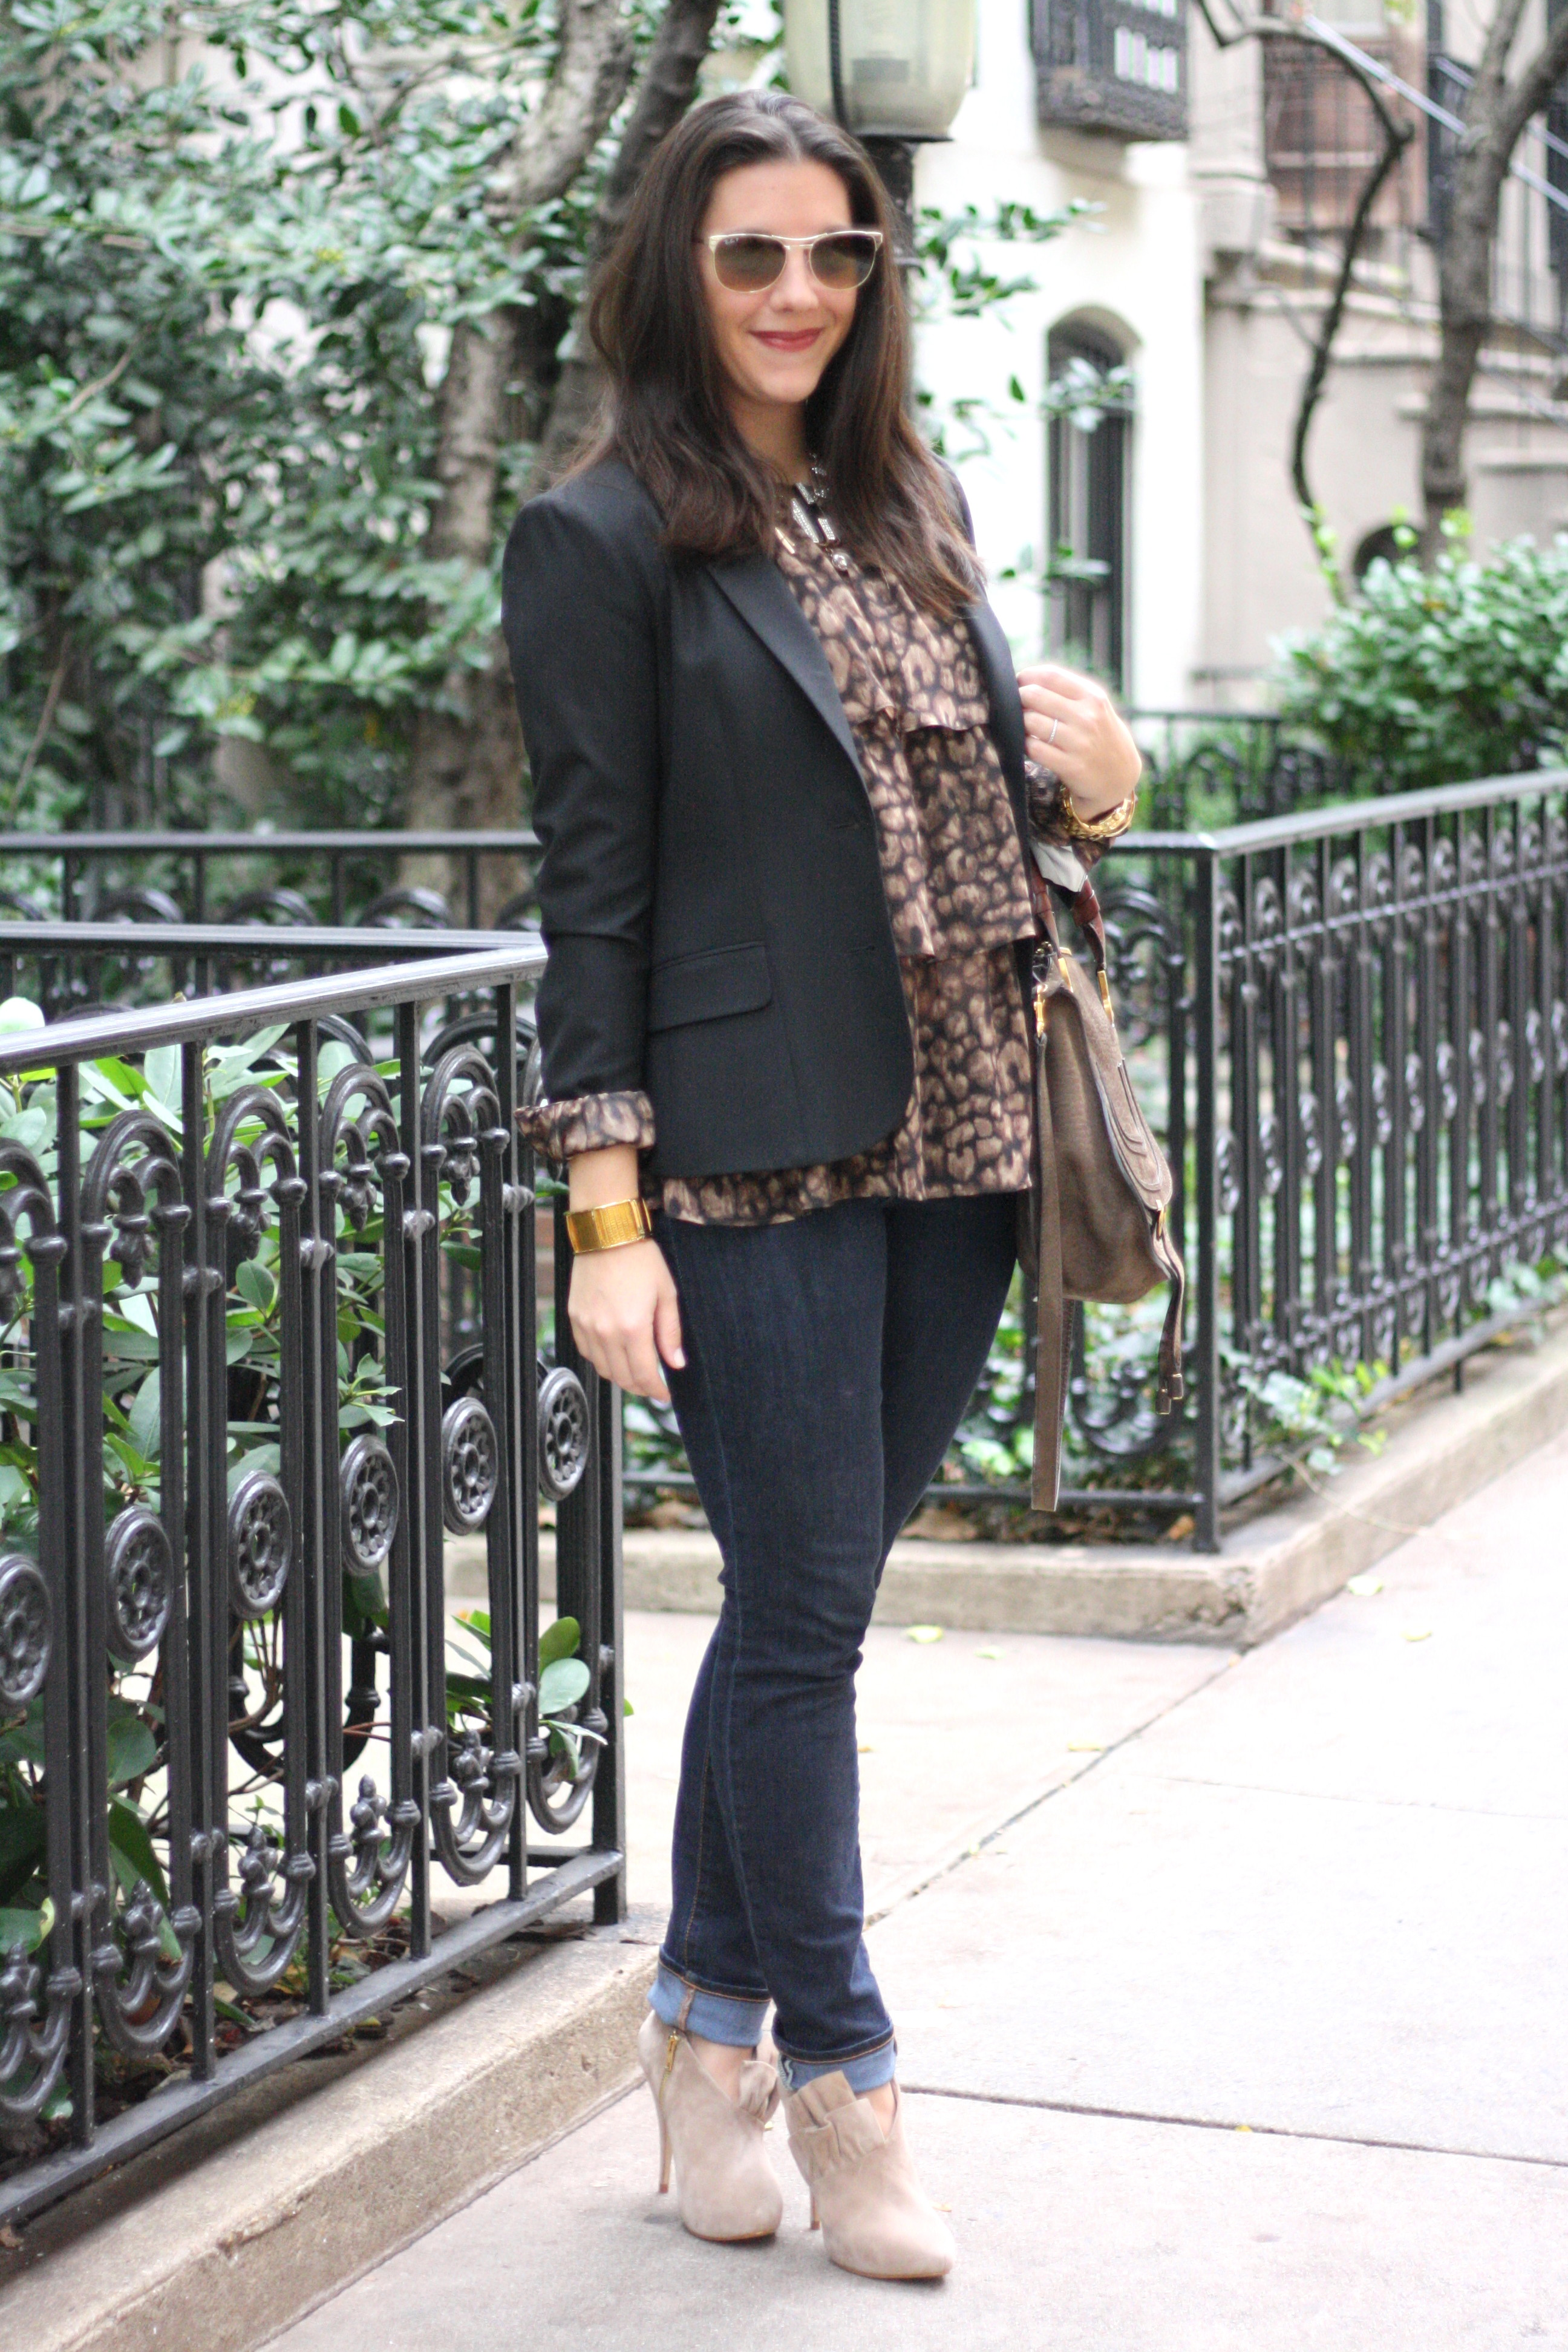 414112dc6a4f 11 Fashion Tips from Mom Bloggers